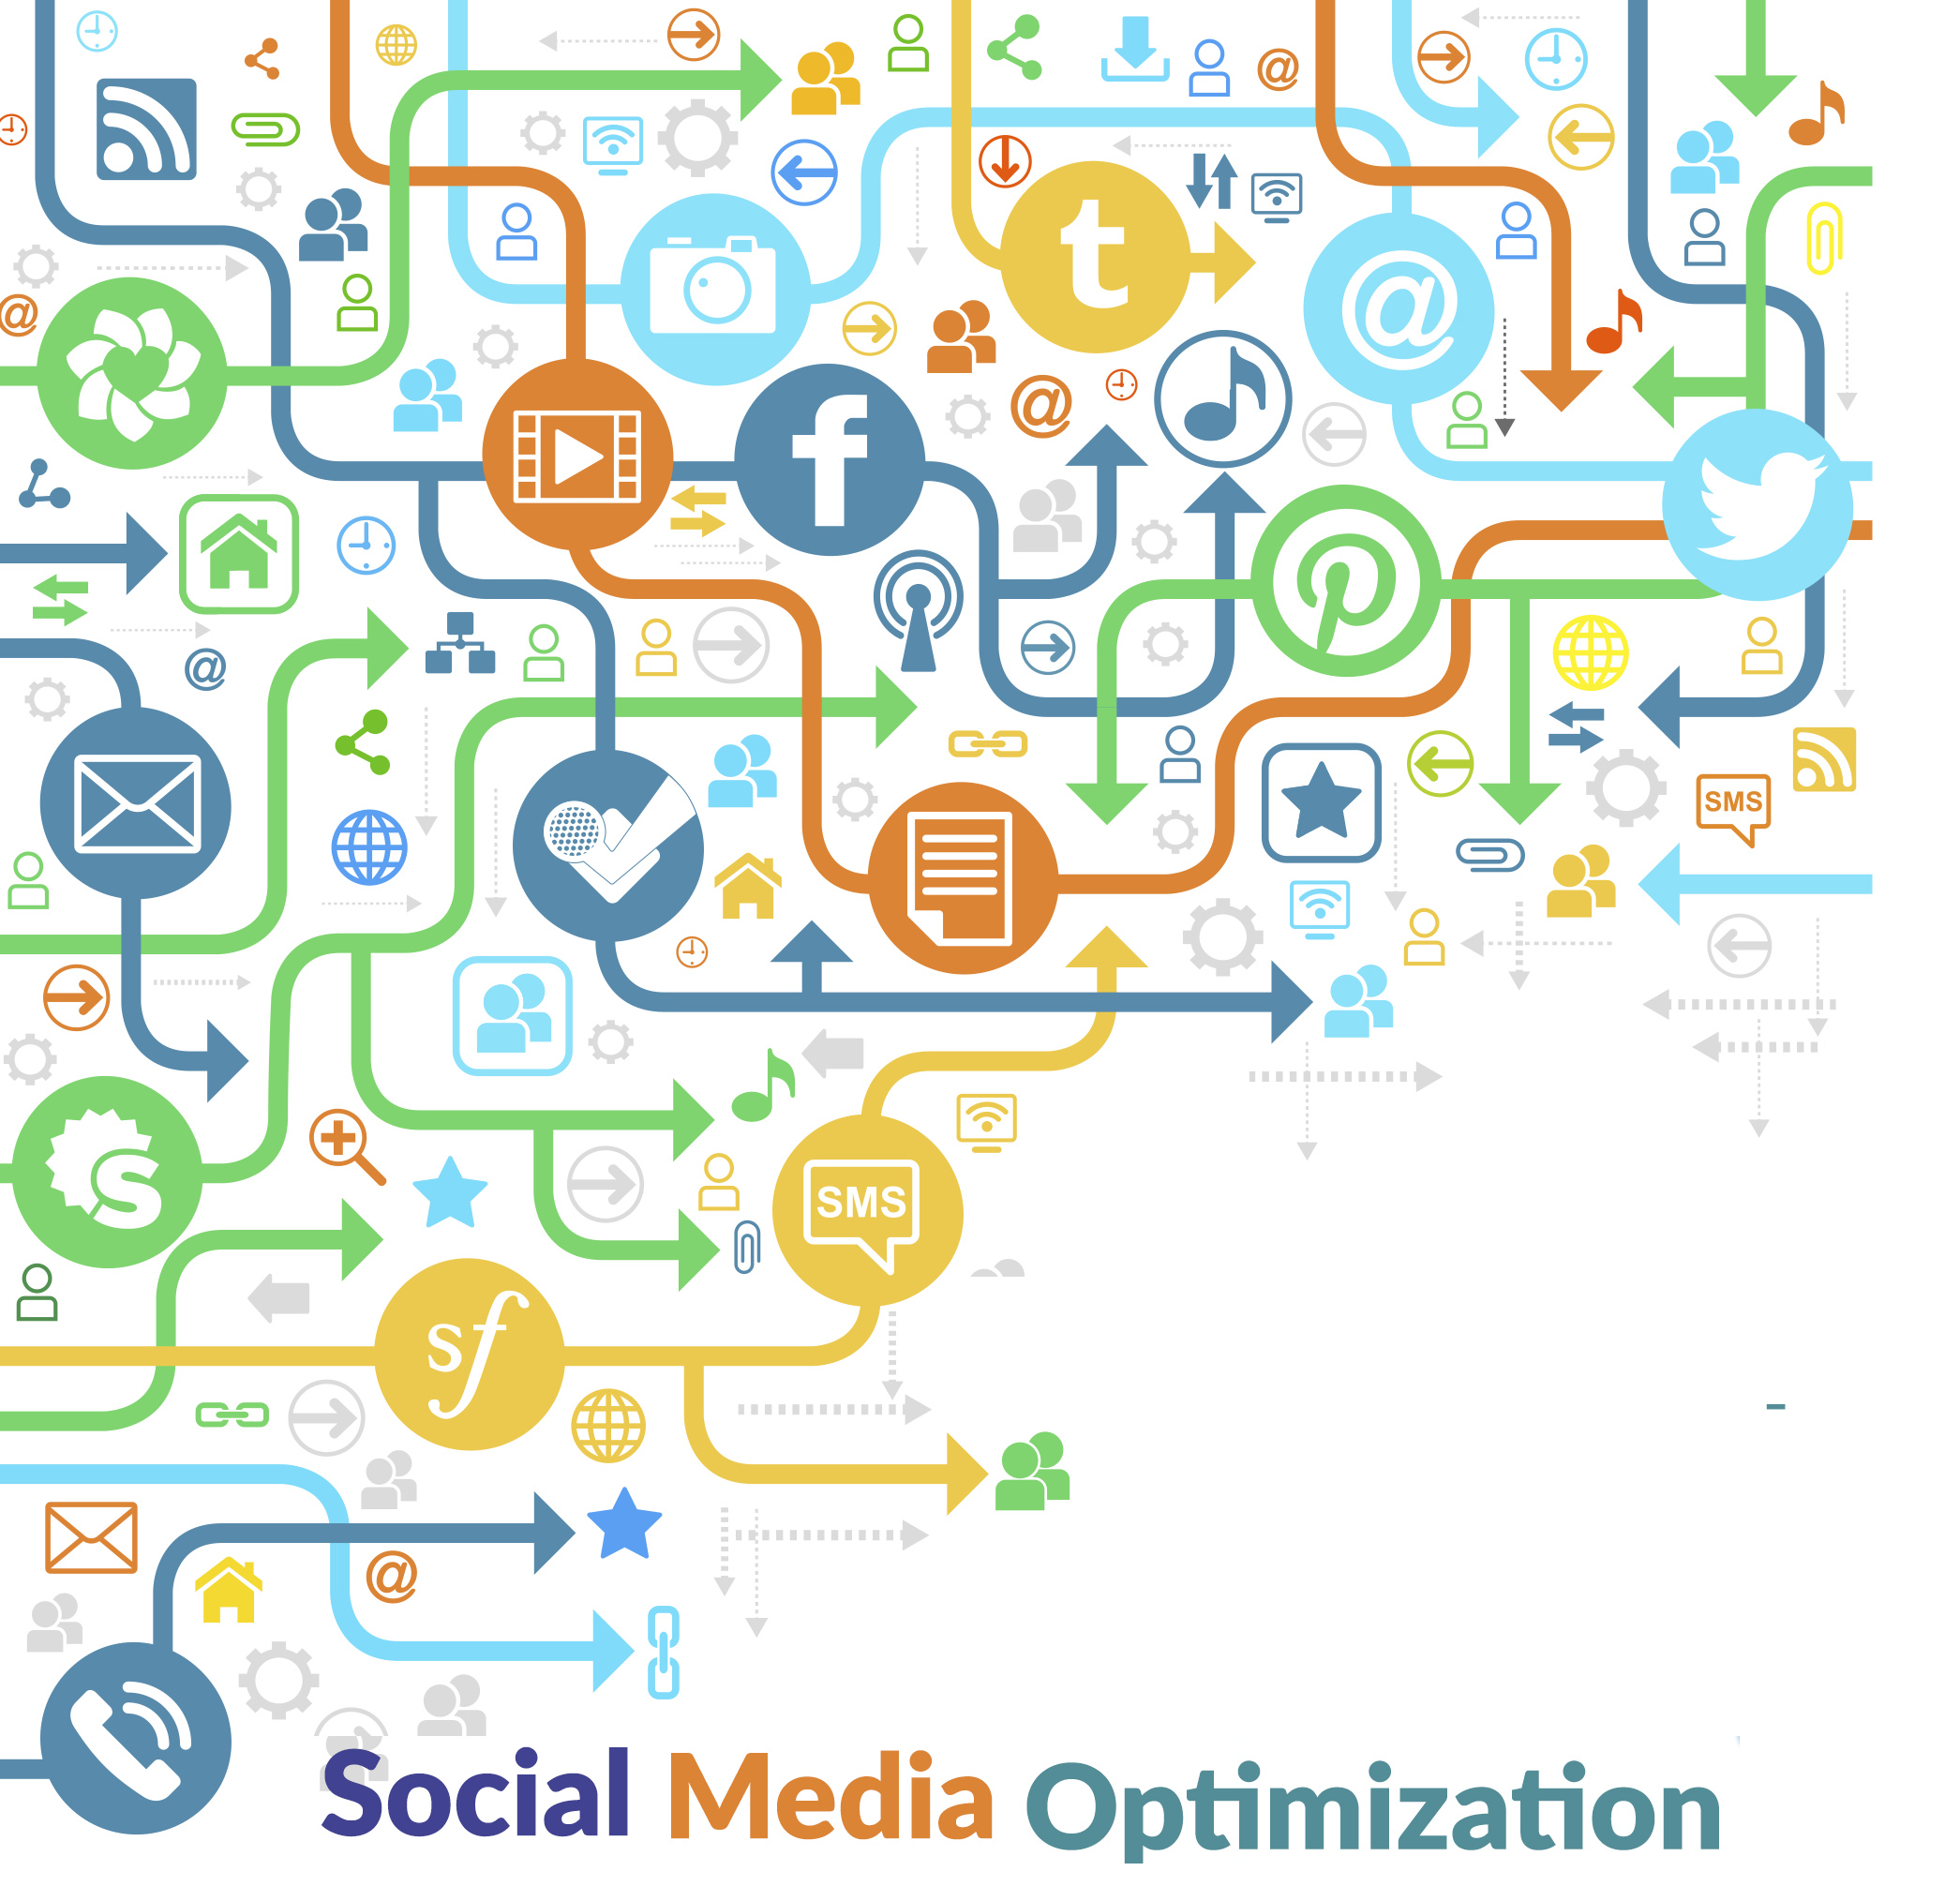 Digital Marketing, Social Media Marketing, Search Engine Optimization